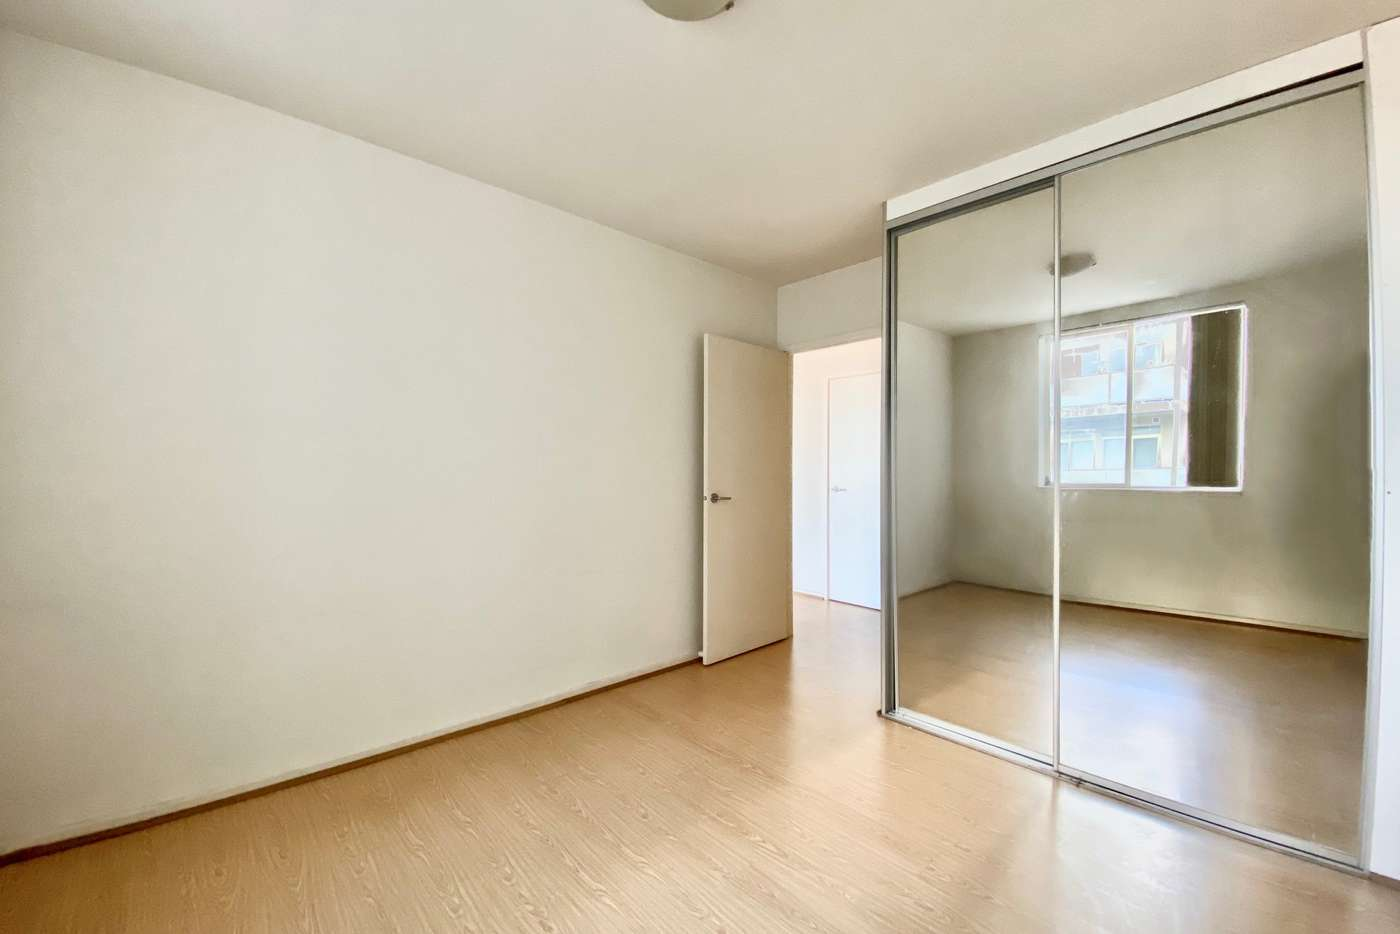 Sixth view of Homely apartment listing, 27/337-341 Sydney Road, Brunswick VIC 3056